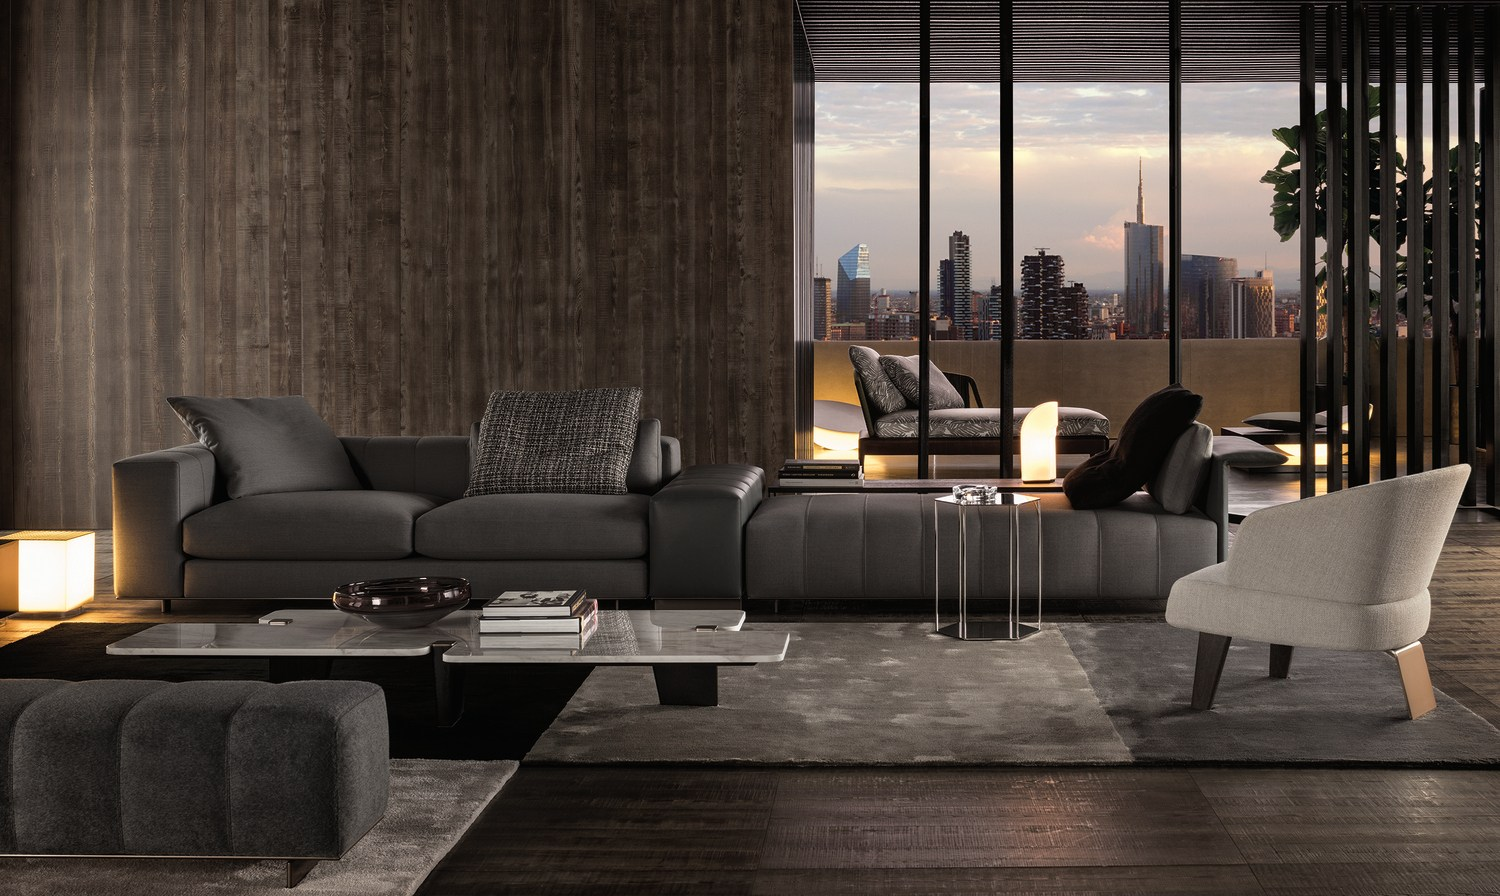 Sofa freeman seating system by minotti for Chaise de salle a manger avec accoudoir